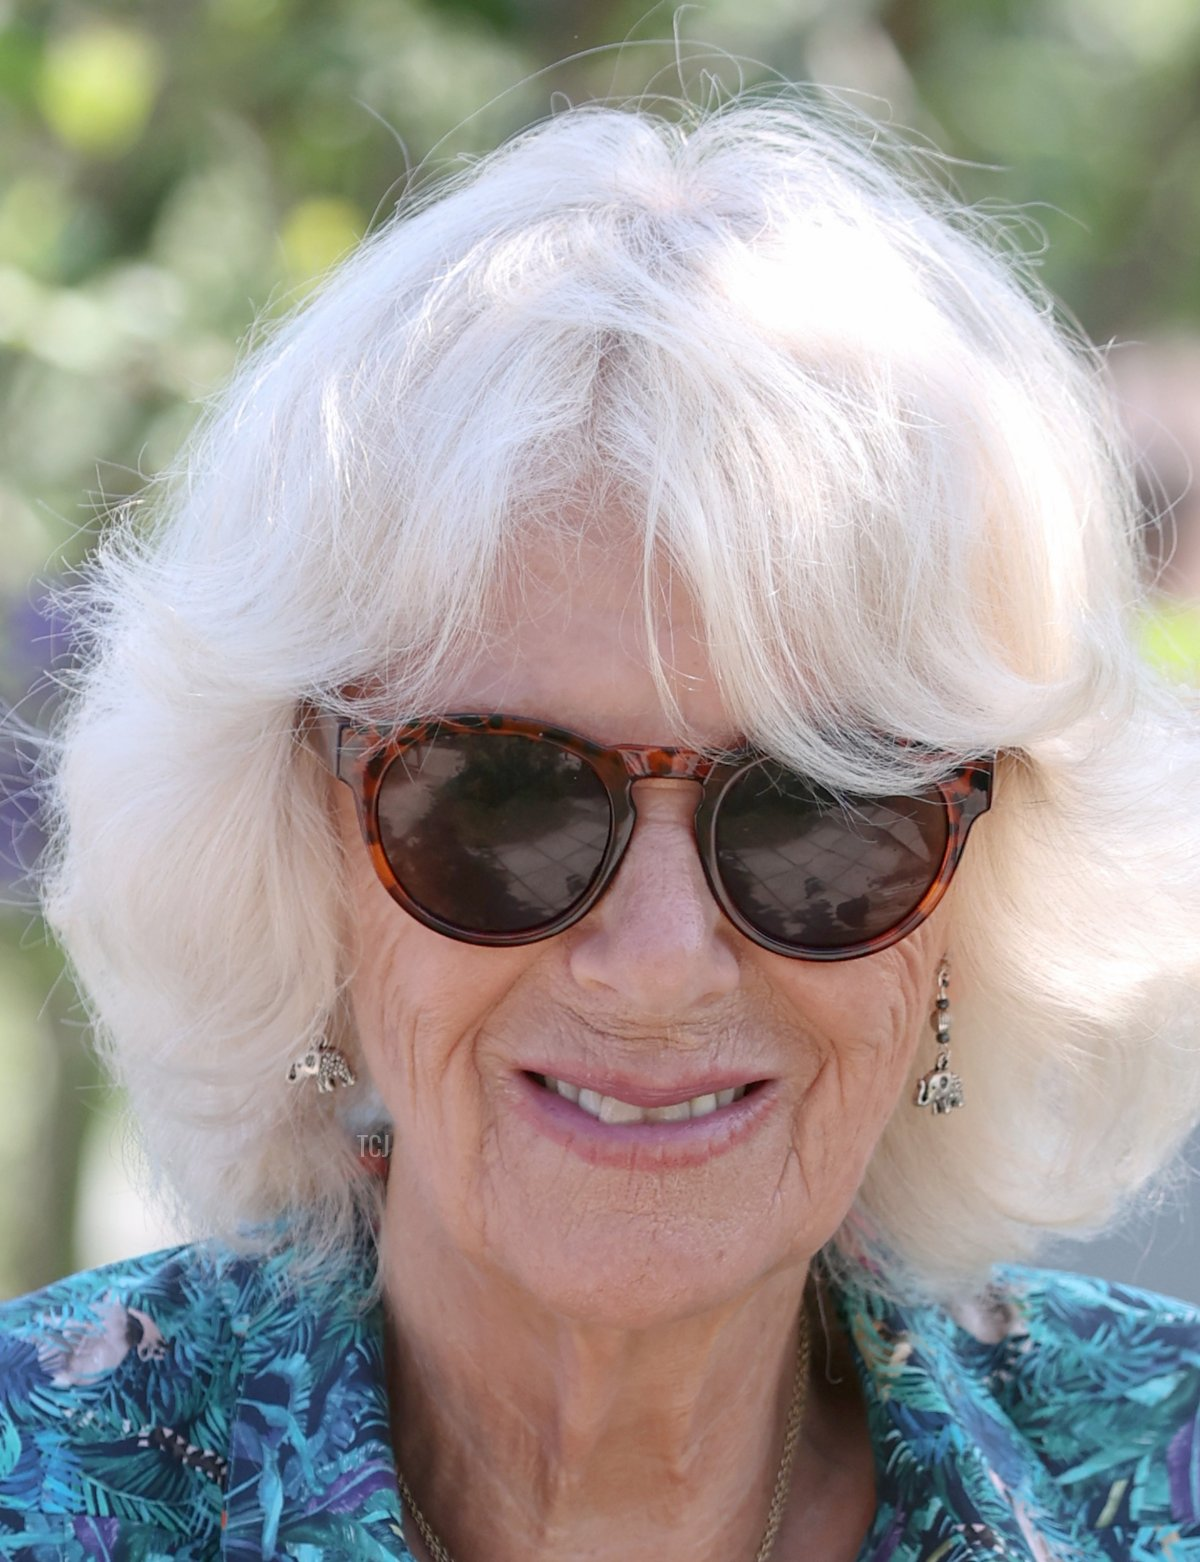 Camilla, Duchess of Cornwall smiles as she visits Five Islands Academy School for an Eco Conference, with Prince Charles, Prince of Wales, during Day 2 of their visit to Devon and Cornwall on July 20, 2021 in St Mary's, Isles of Scilly